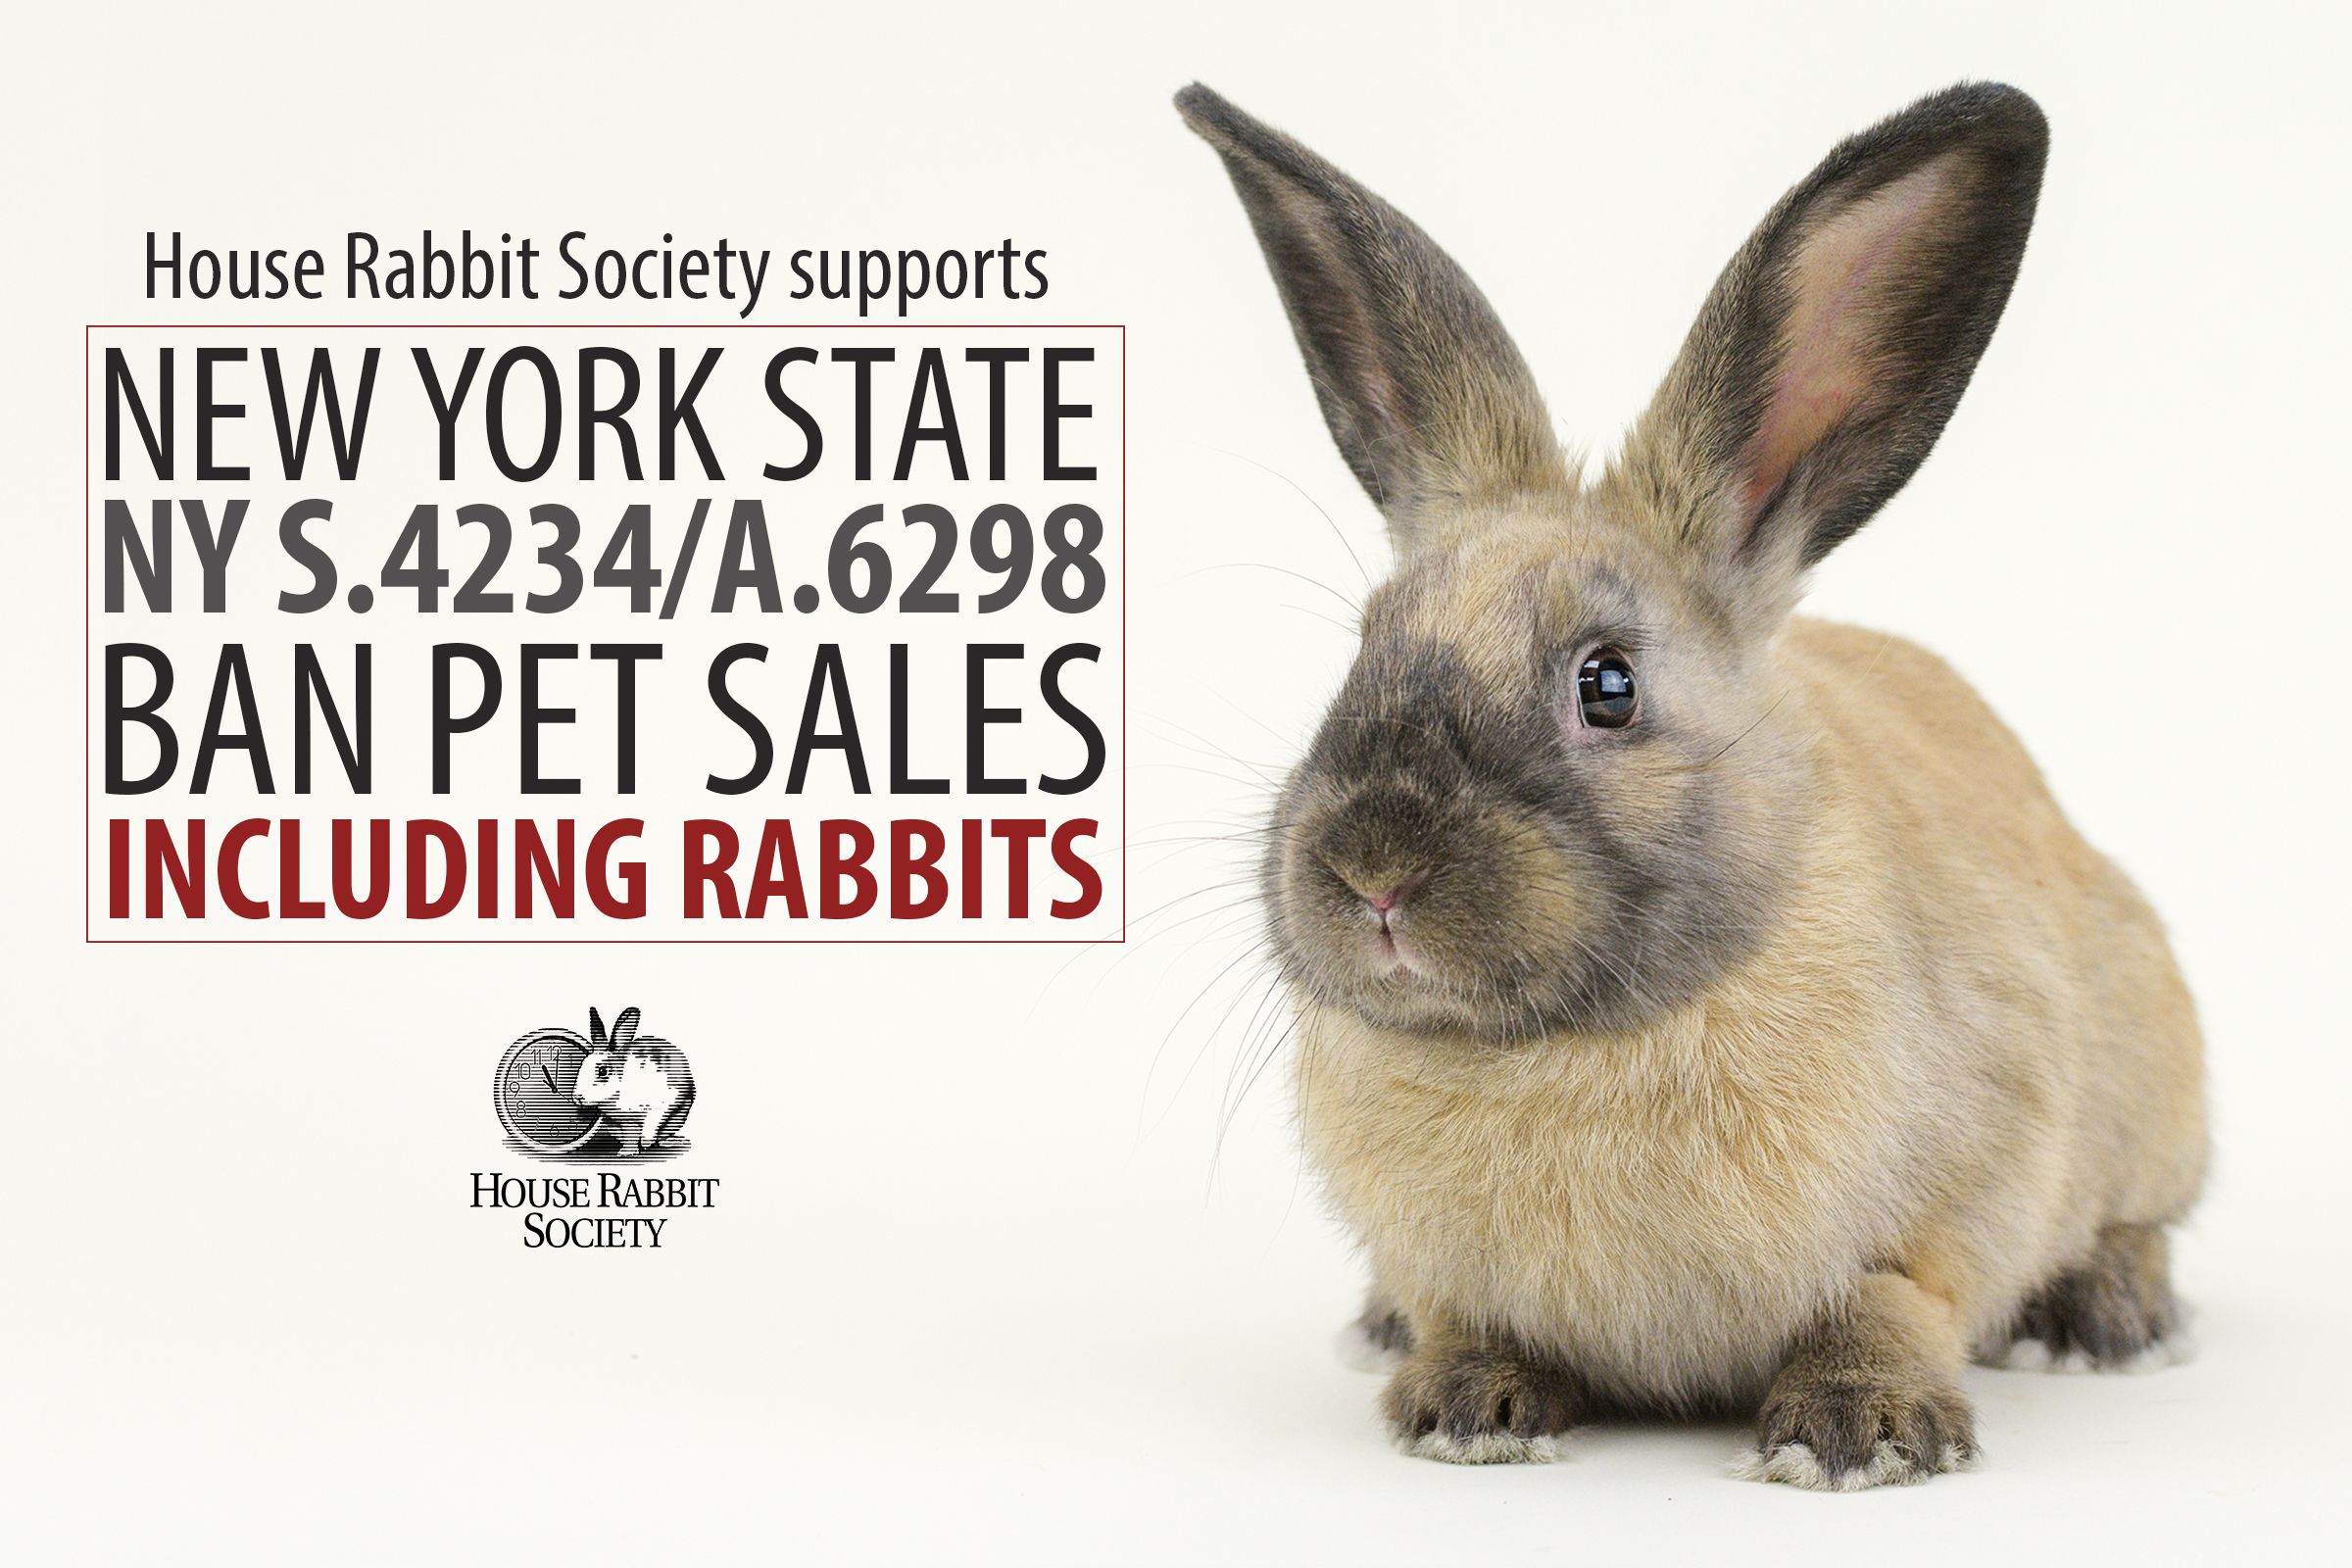 HRS Supports Ban on Pet Store Sales of Rabbits, Cats, and Dogs – NY S.4234/A.6298